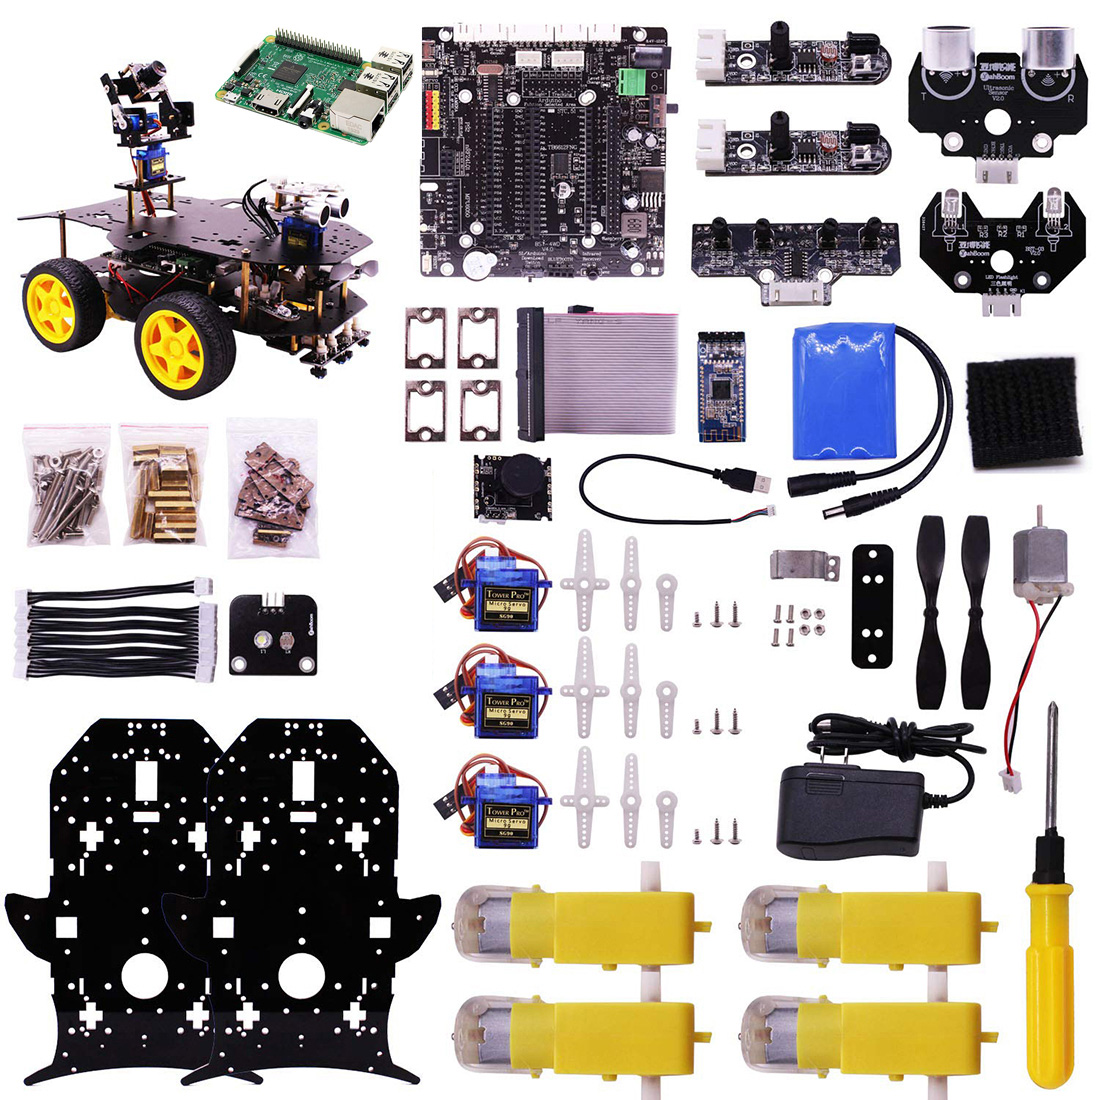 Bluetooth Ultimate Starter Programmable Smart Robot Car Toy With Camera 4WD Electronics DIY Toy Kit With Raspberry 4B 1G/2G/4G